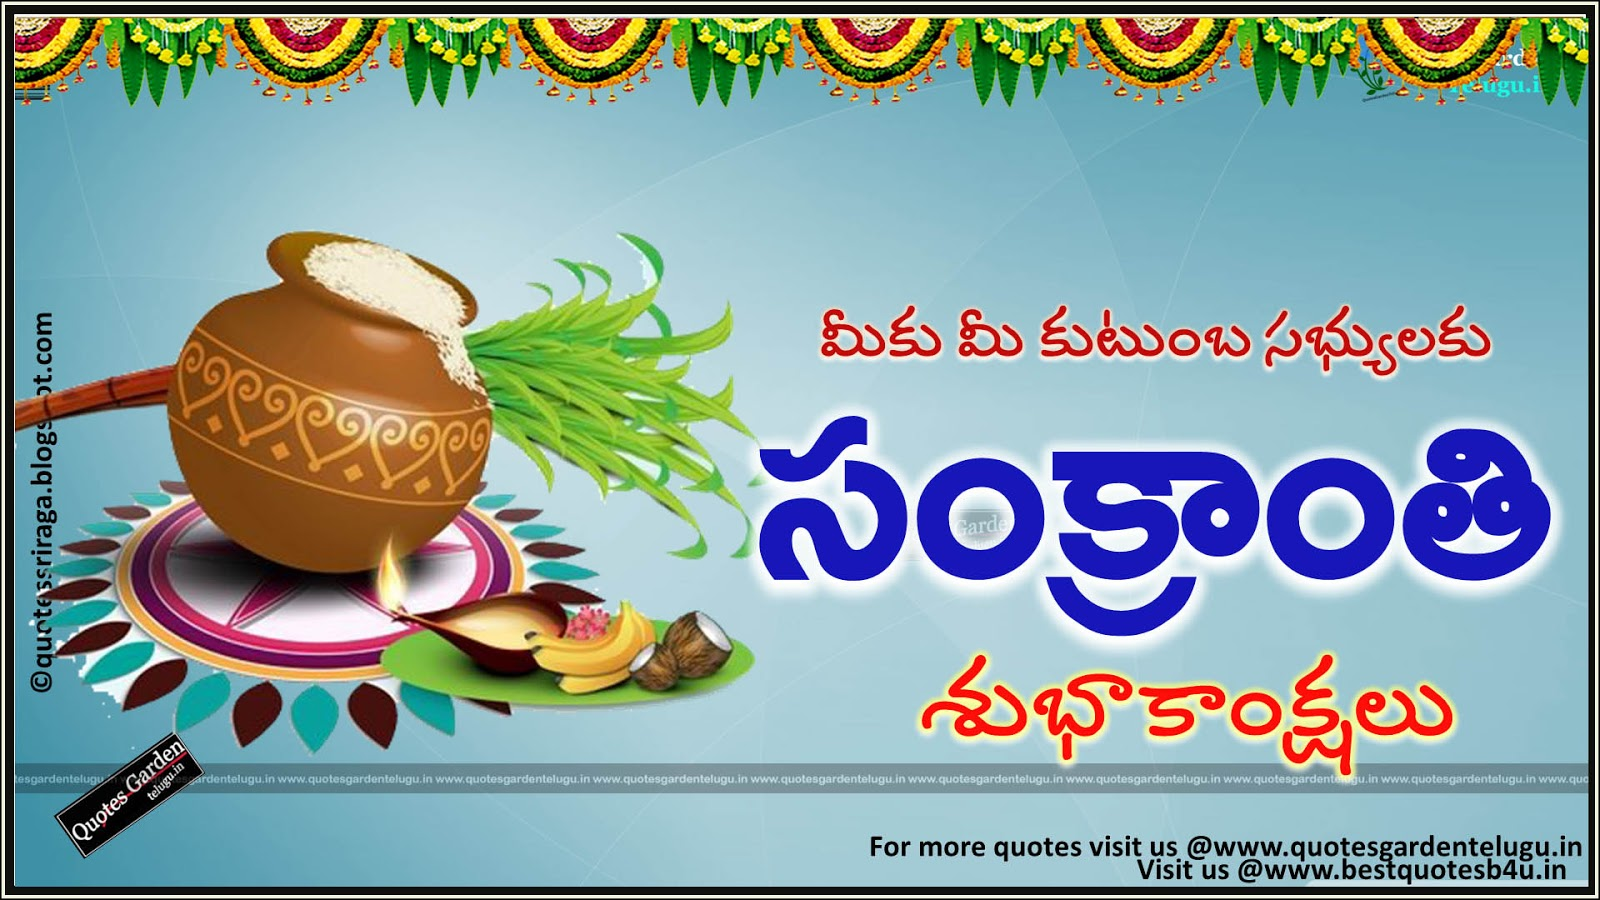 Makarsankranti festival greetings 2017 quotes garden telugu happy pongal 2016 greetings wishes in telugu kristyandbryce Images